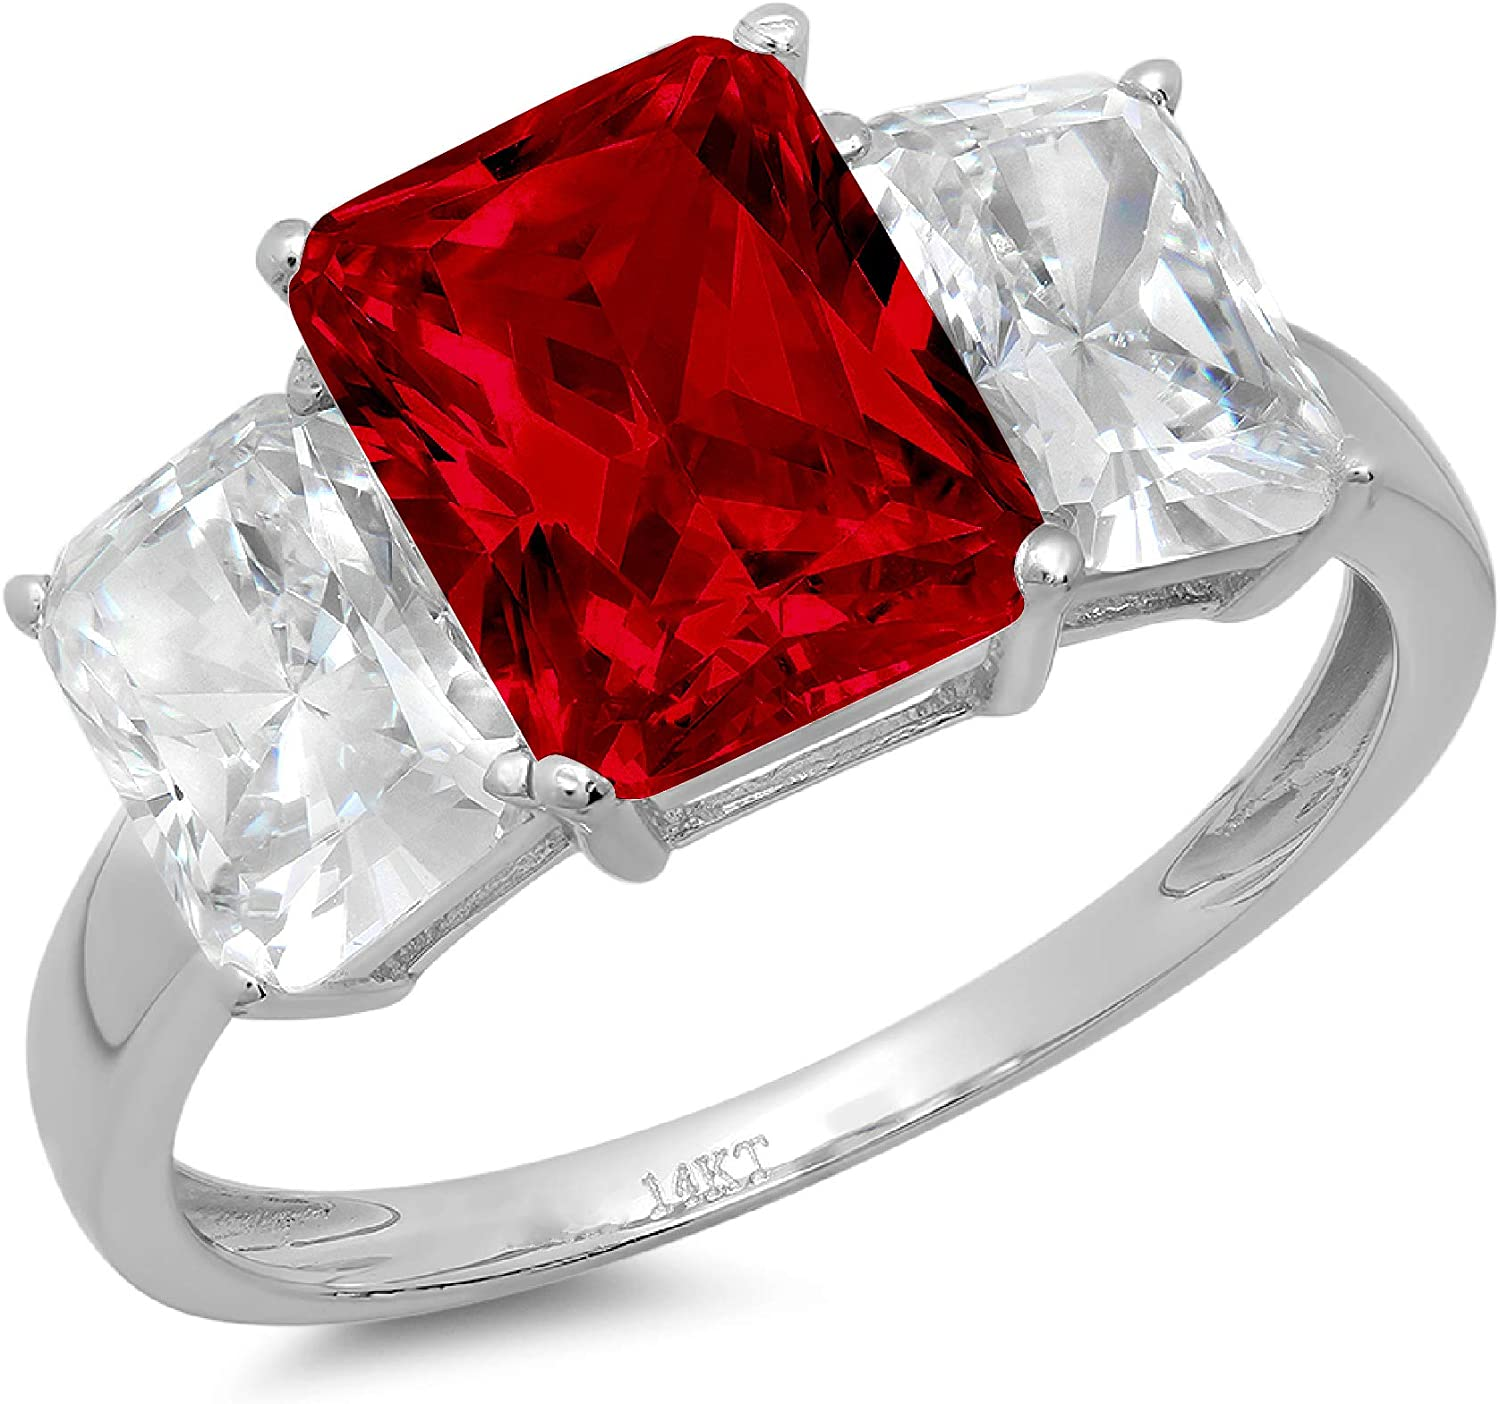 4.0 ct Brilliant Emerald Cut 3 Stone Solitaire with Accent Natural Deep Pomegranate Dark Red Garnet Gemstone Ideal VVS1 Engagement Promise Statement Anniversary Bridal Wedding Ring 14k White Gold